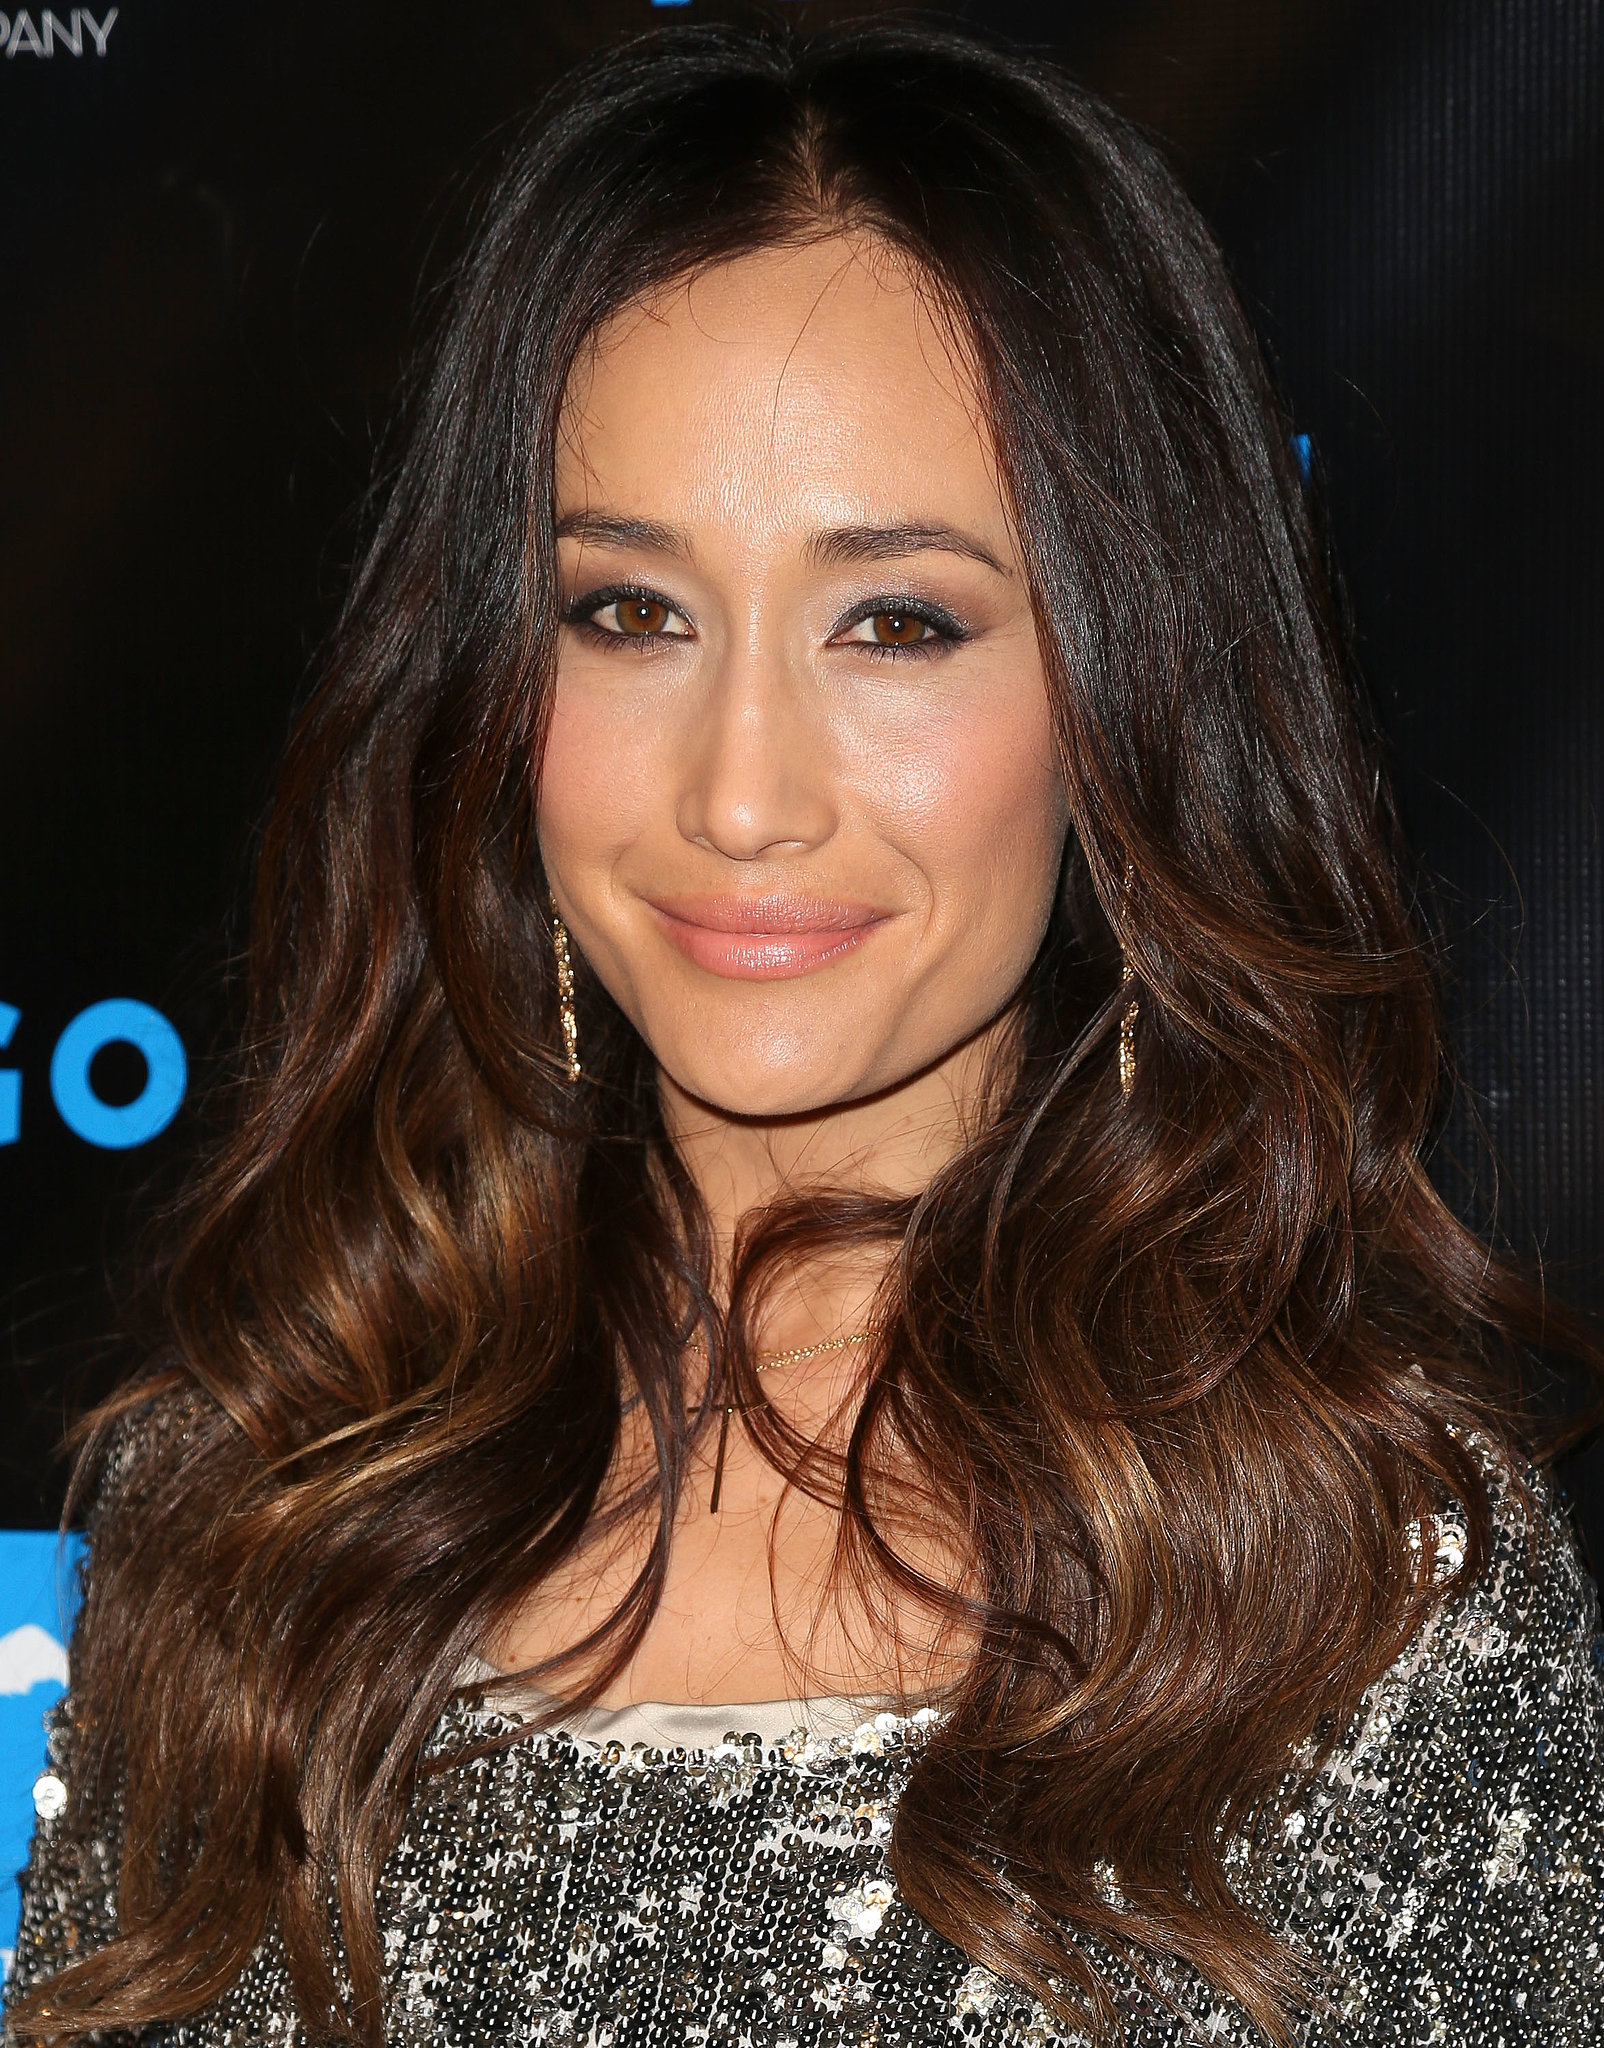 Maggie Q's curls and cat-eye liner were right on point at the Summit Red Carpet Press Event.